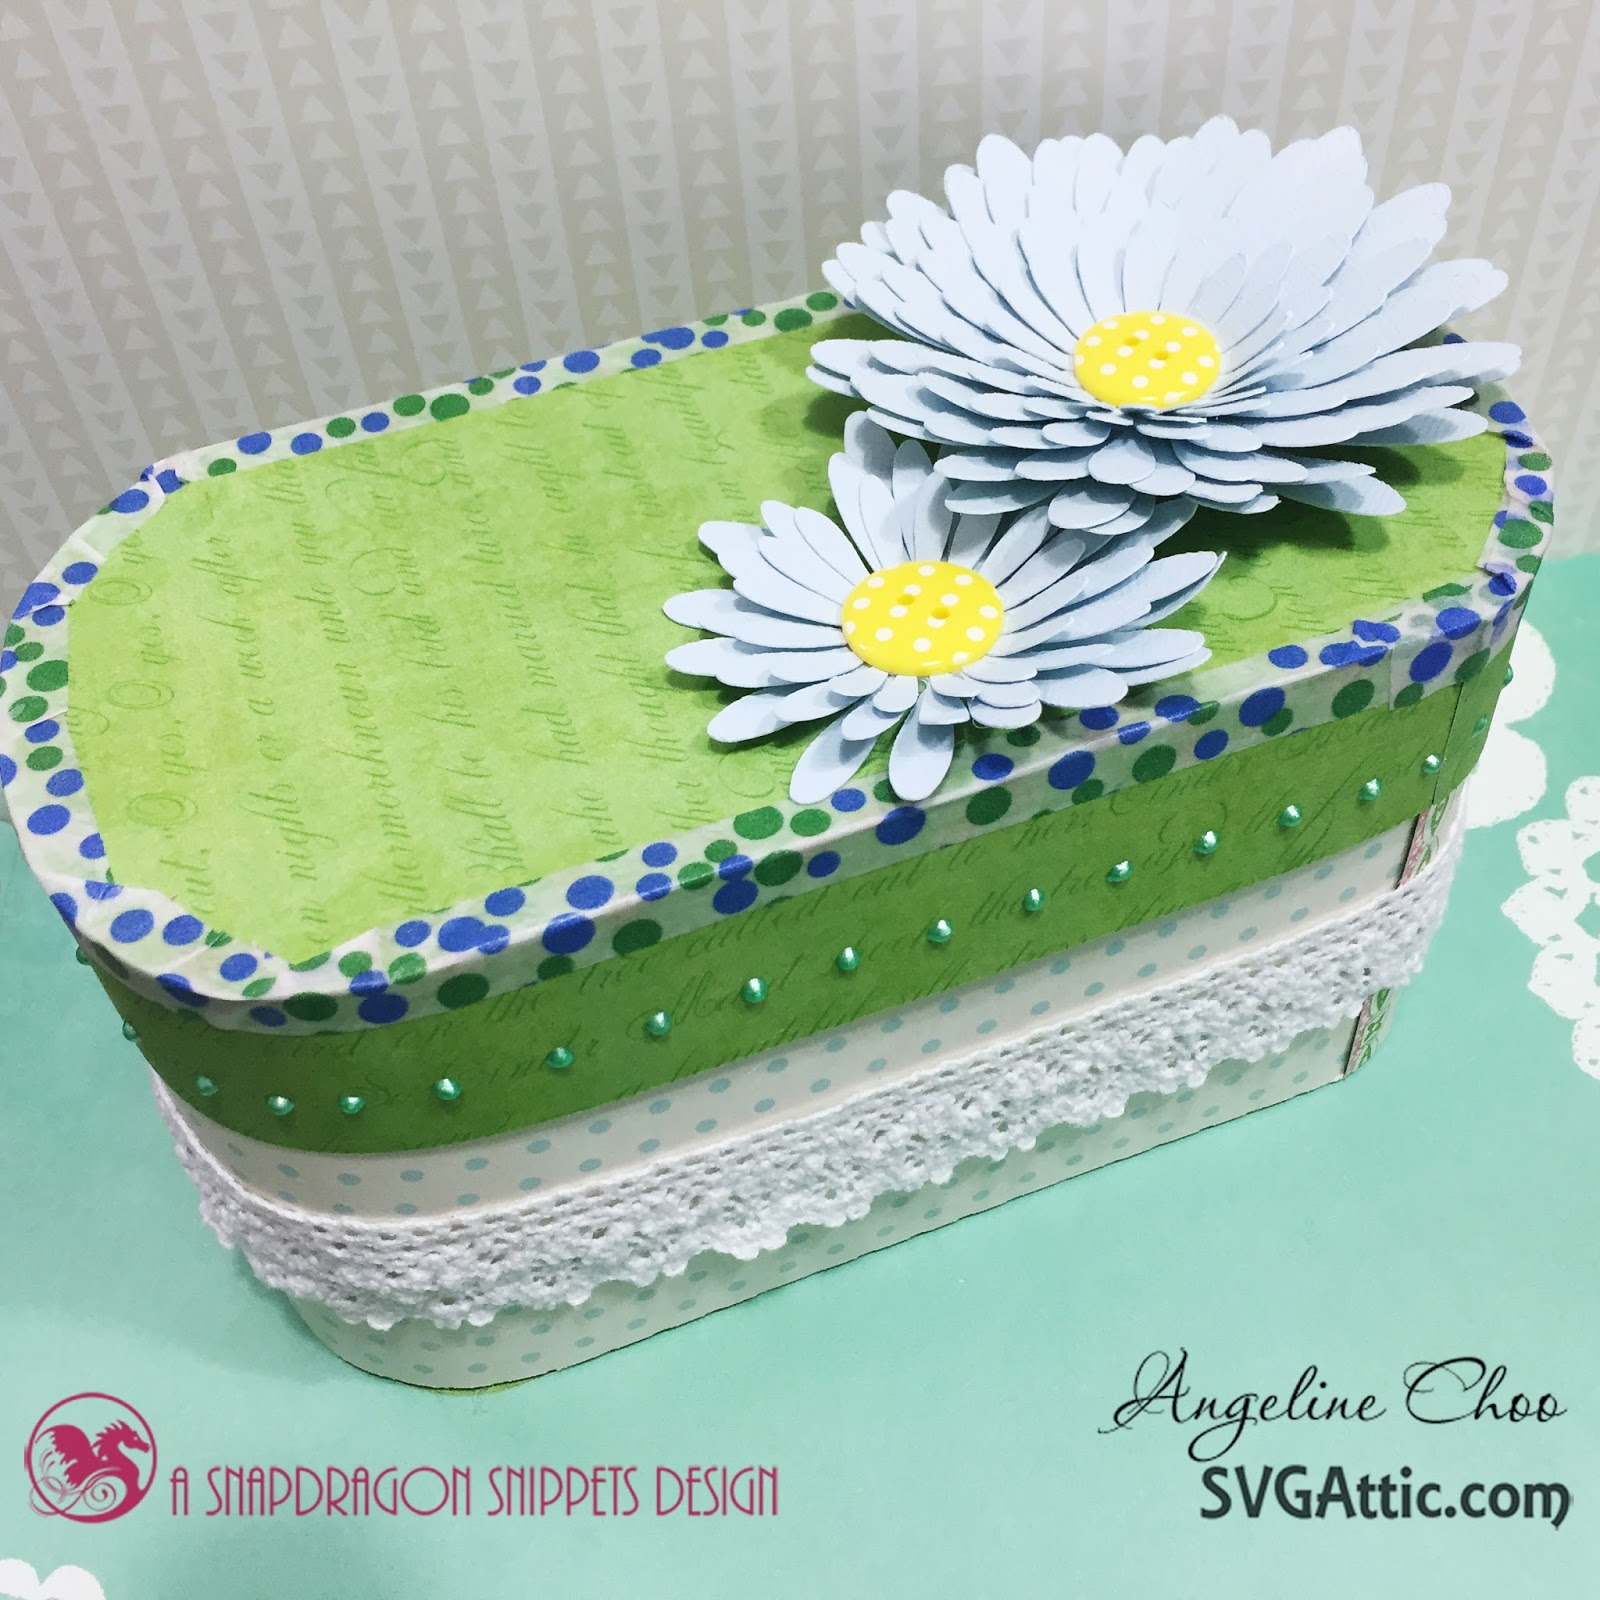 SVG Attic: Flower box with Angeline Choo #svgattic #scrappyscrappy #giftbox #flowers